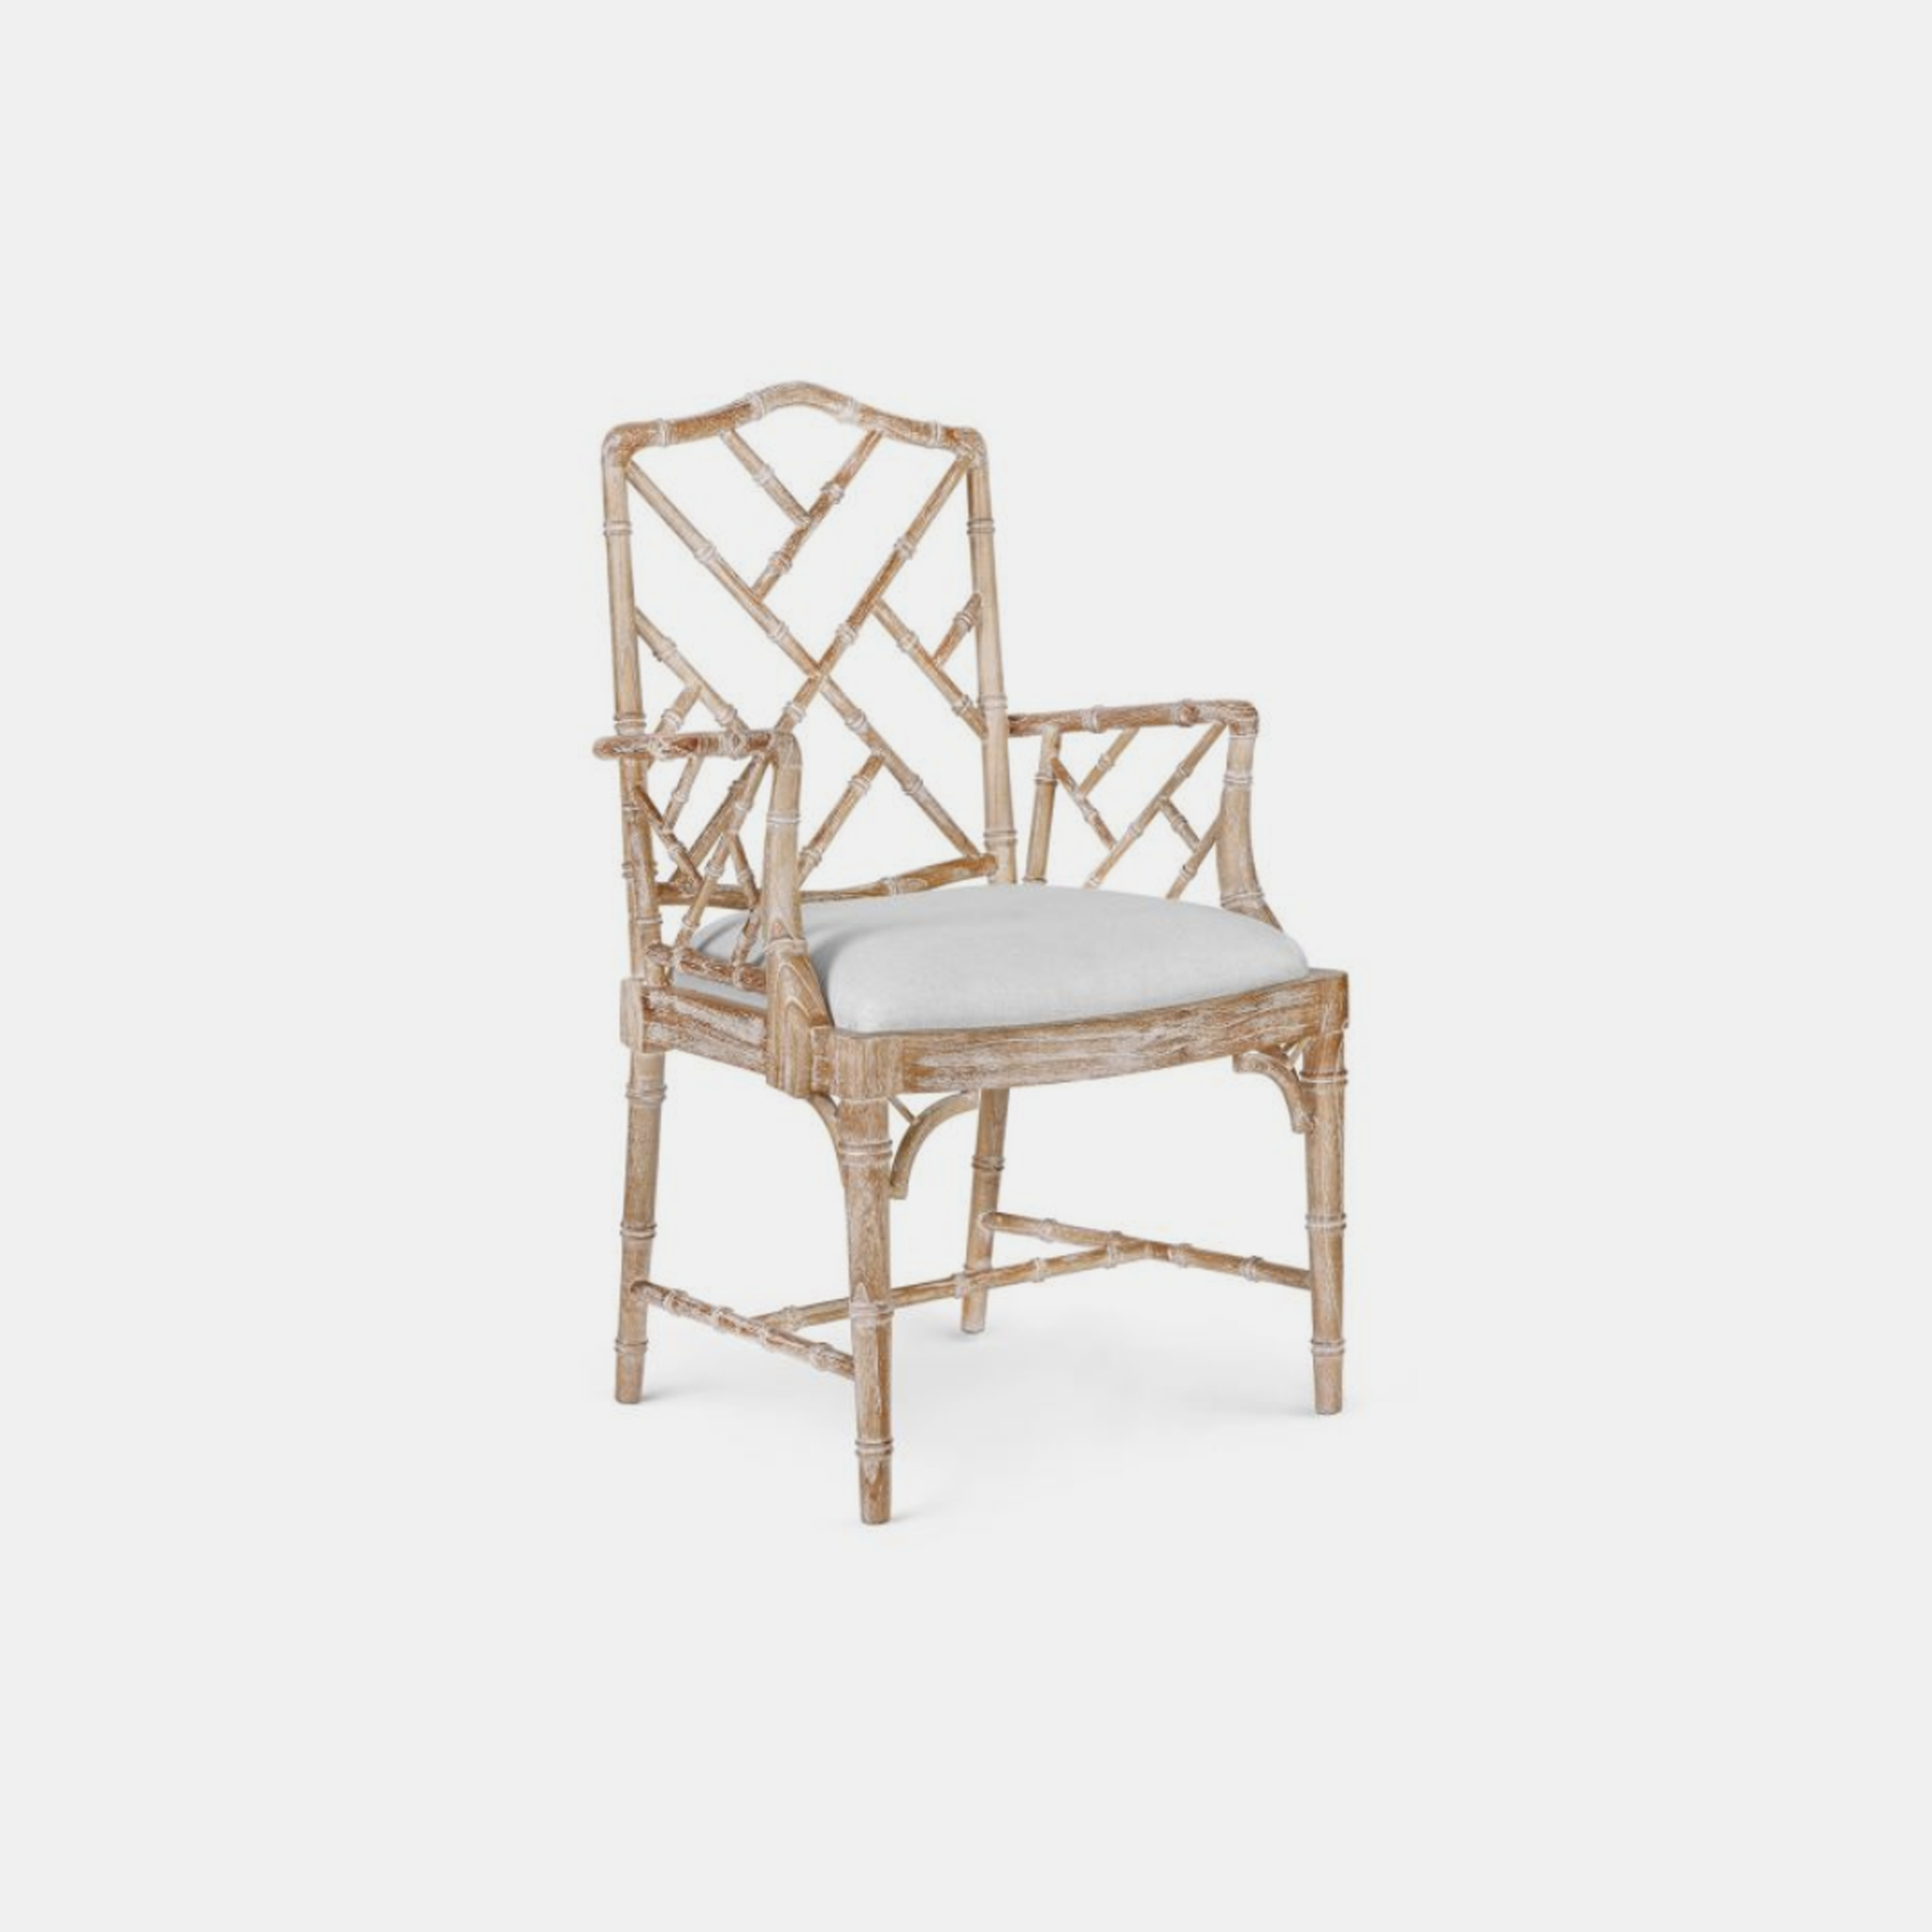 "Quay Armchair  23.5""w x 21.5""d x 40""h Also available as side chair. SKU248BGW"